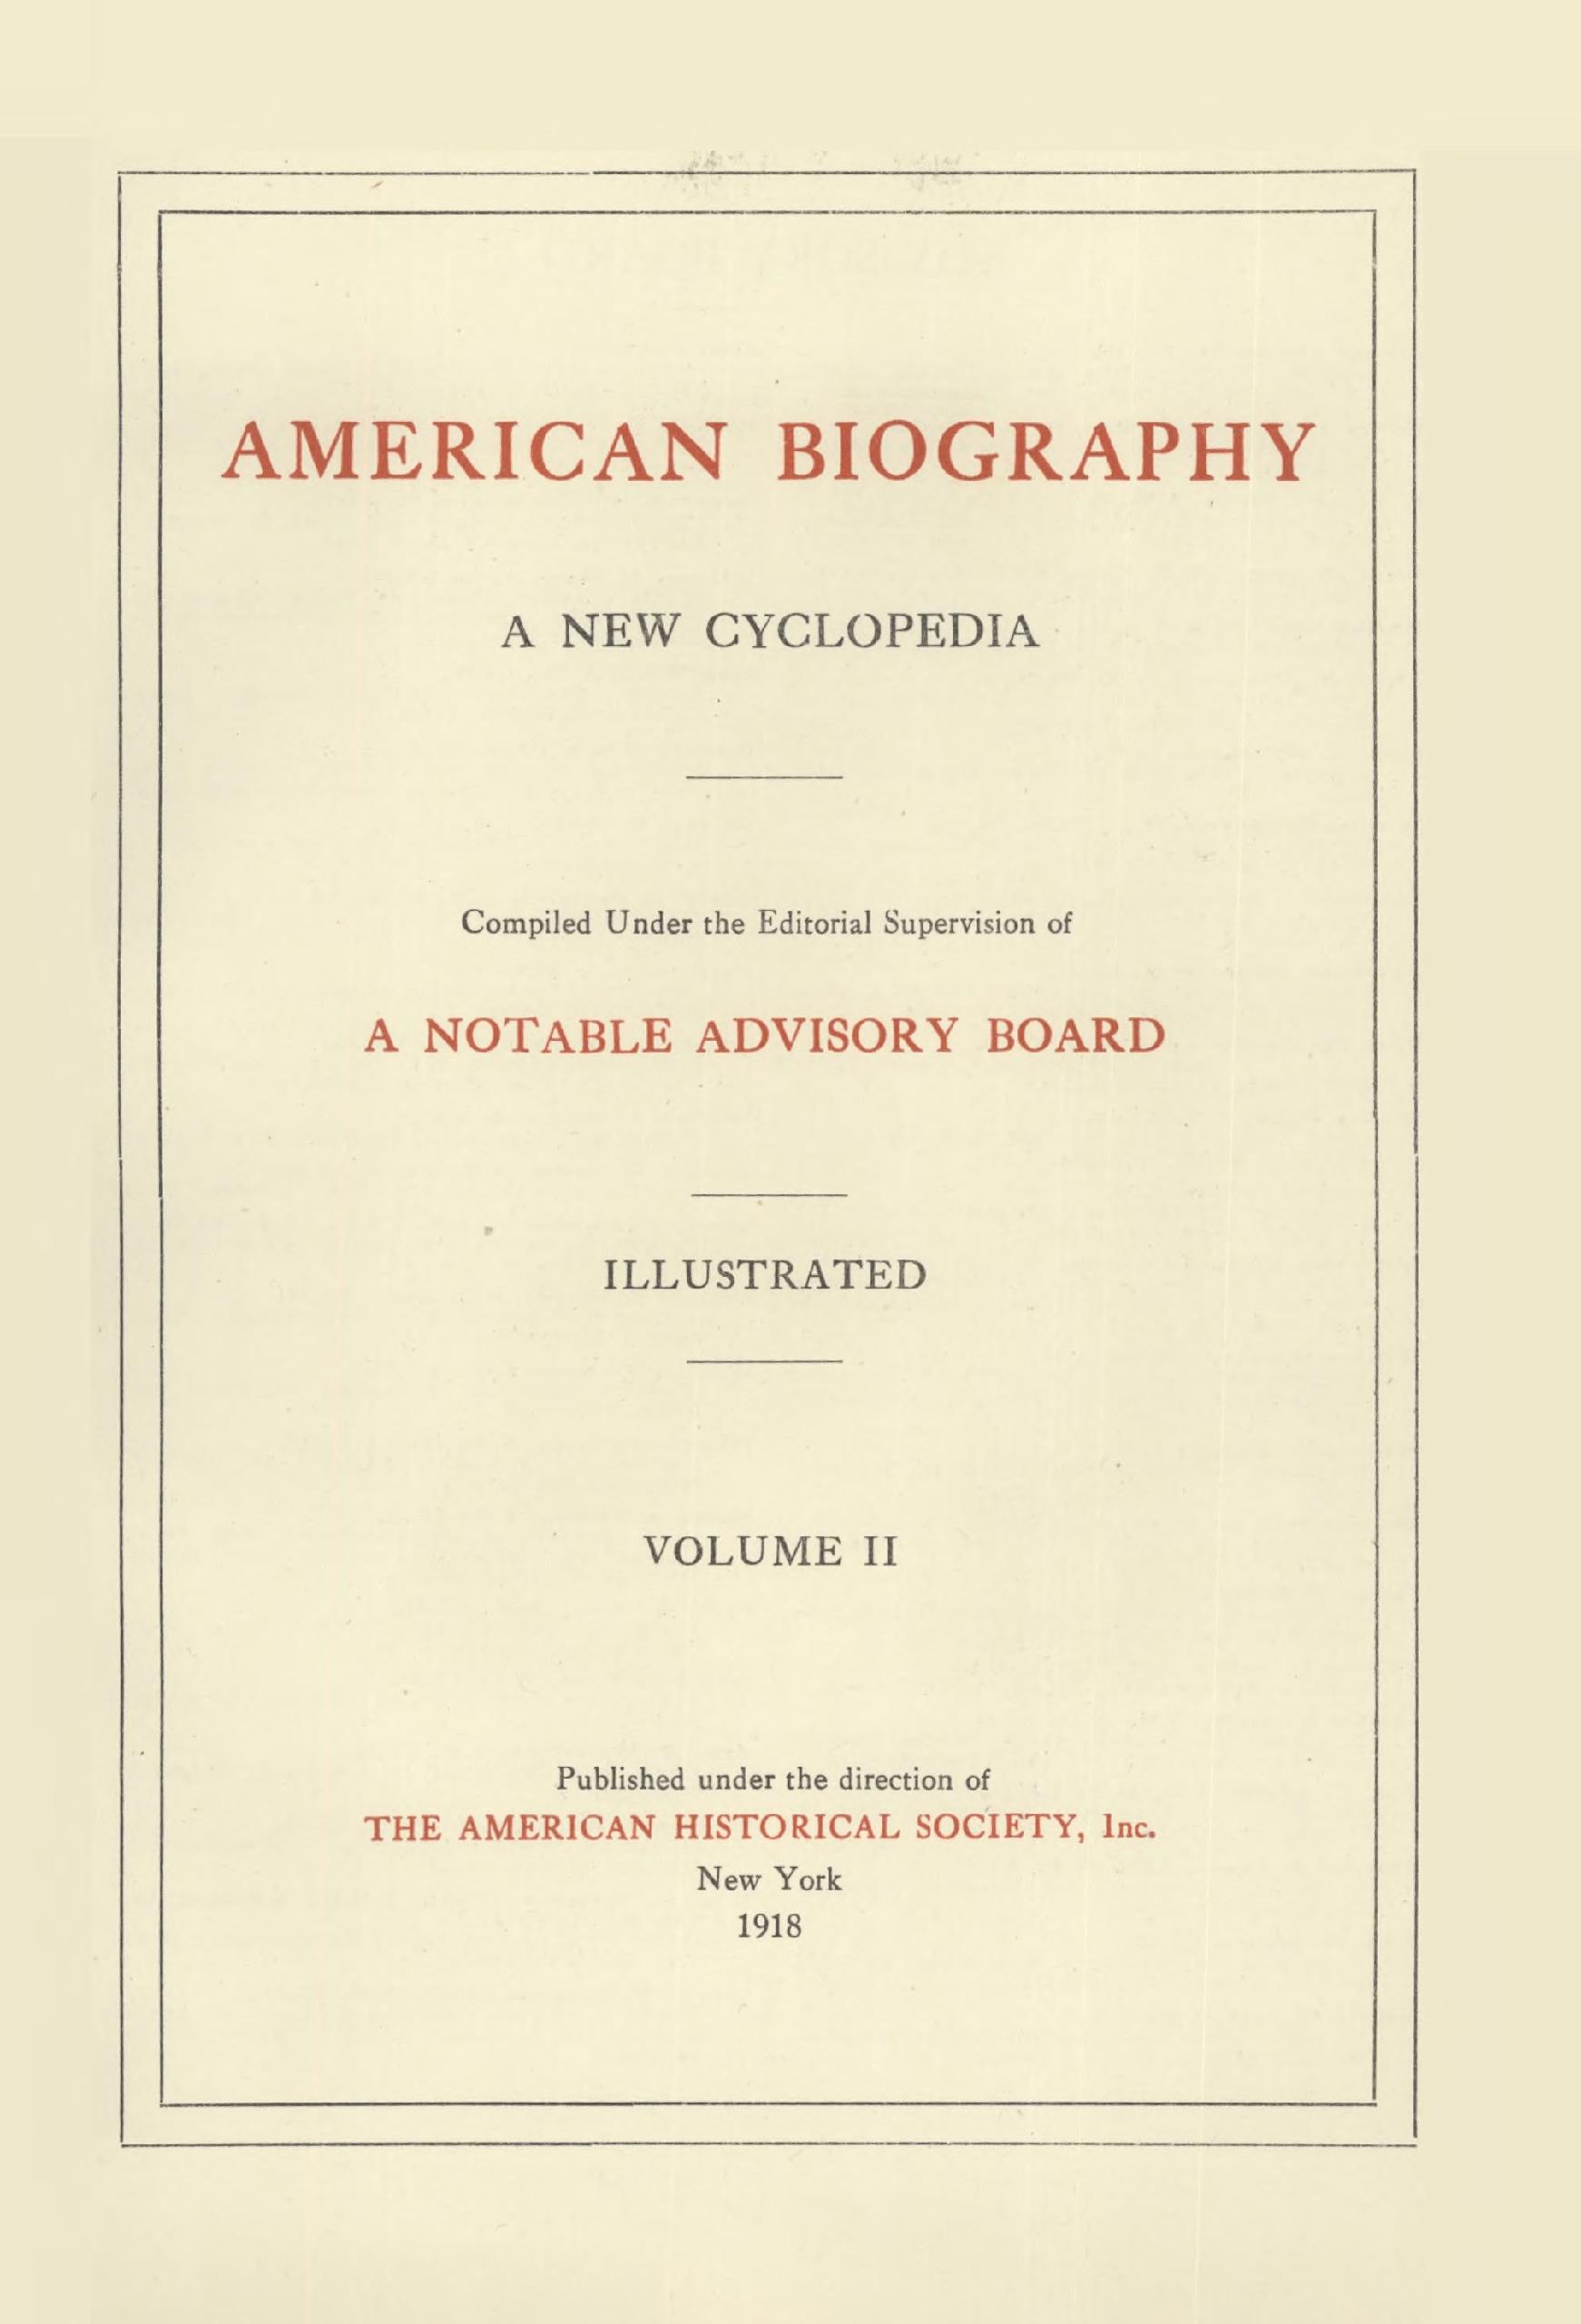 American Biography, a New Cyclopedia, Volume II, compiled and